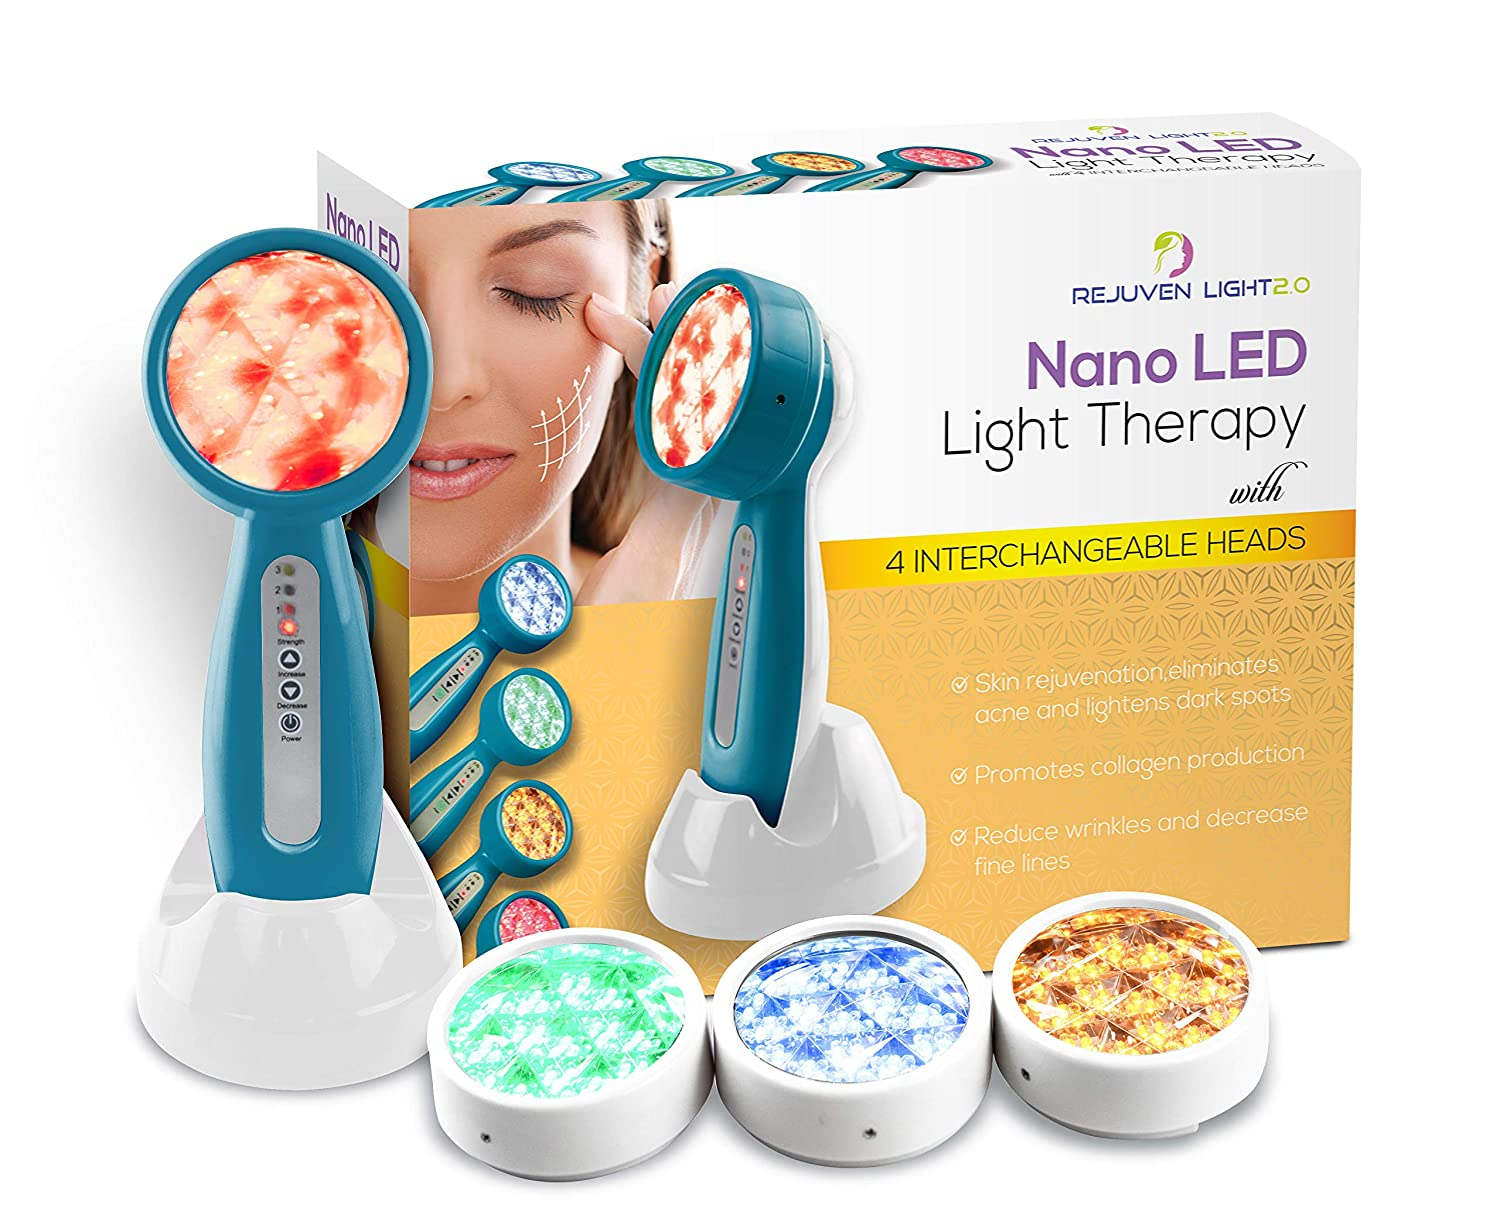 Rejuven Light 2.0 LED Light therapy w/ 4 Interchangeable heads Anti aging device